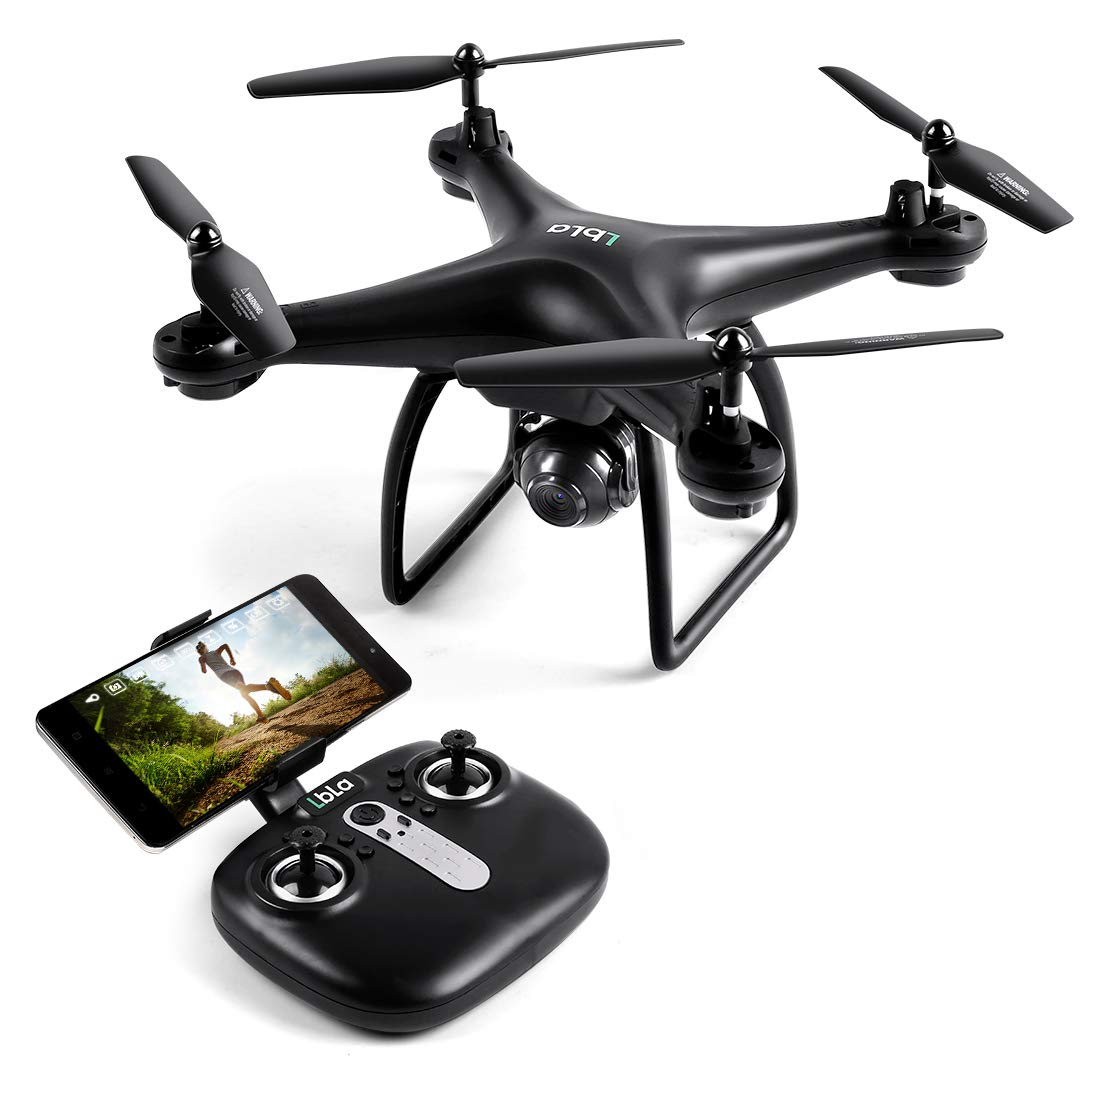 LBLA Drone with Camera,SX16 Wi-Fi FPV Training Quadcopter with 720P HD Camera Equipped with Headless Mode One Key Return Easy Operation